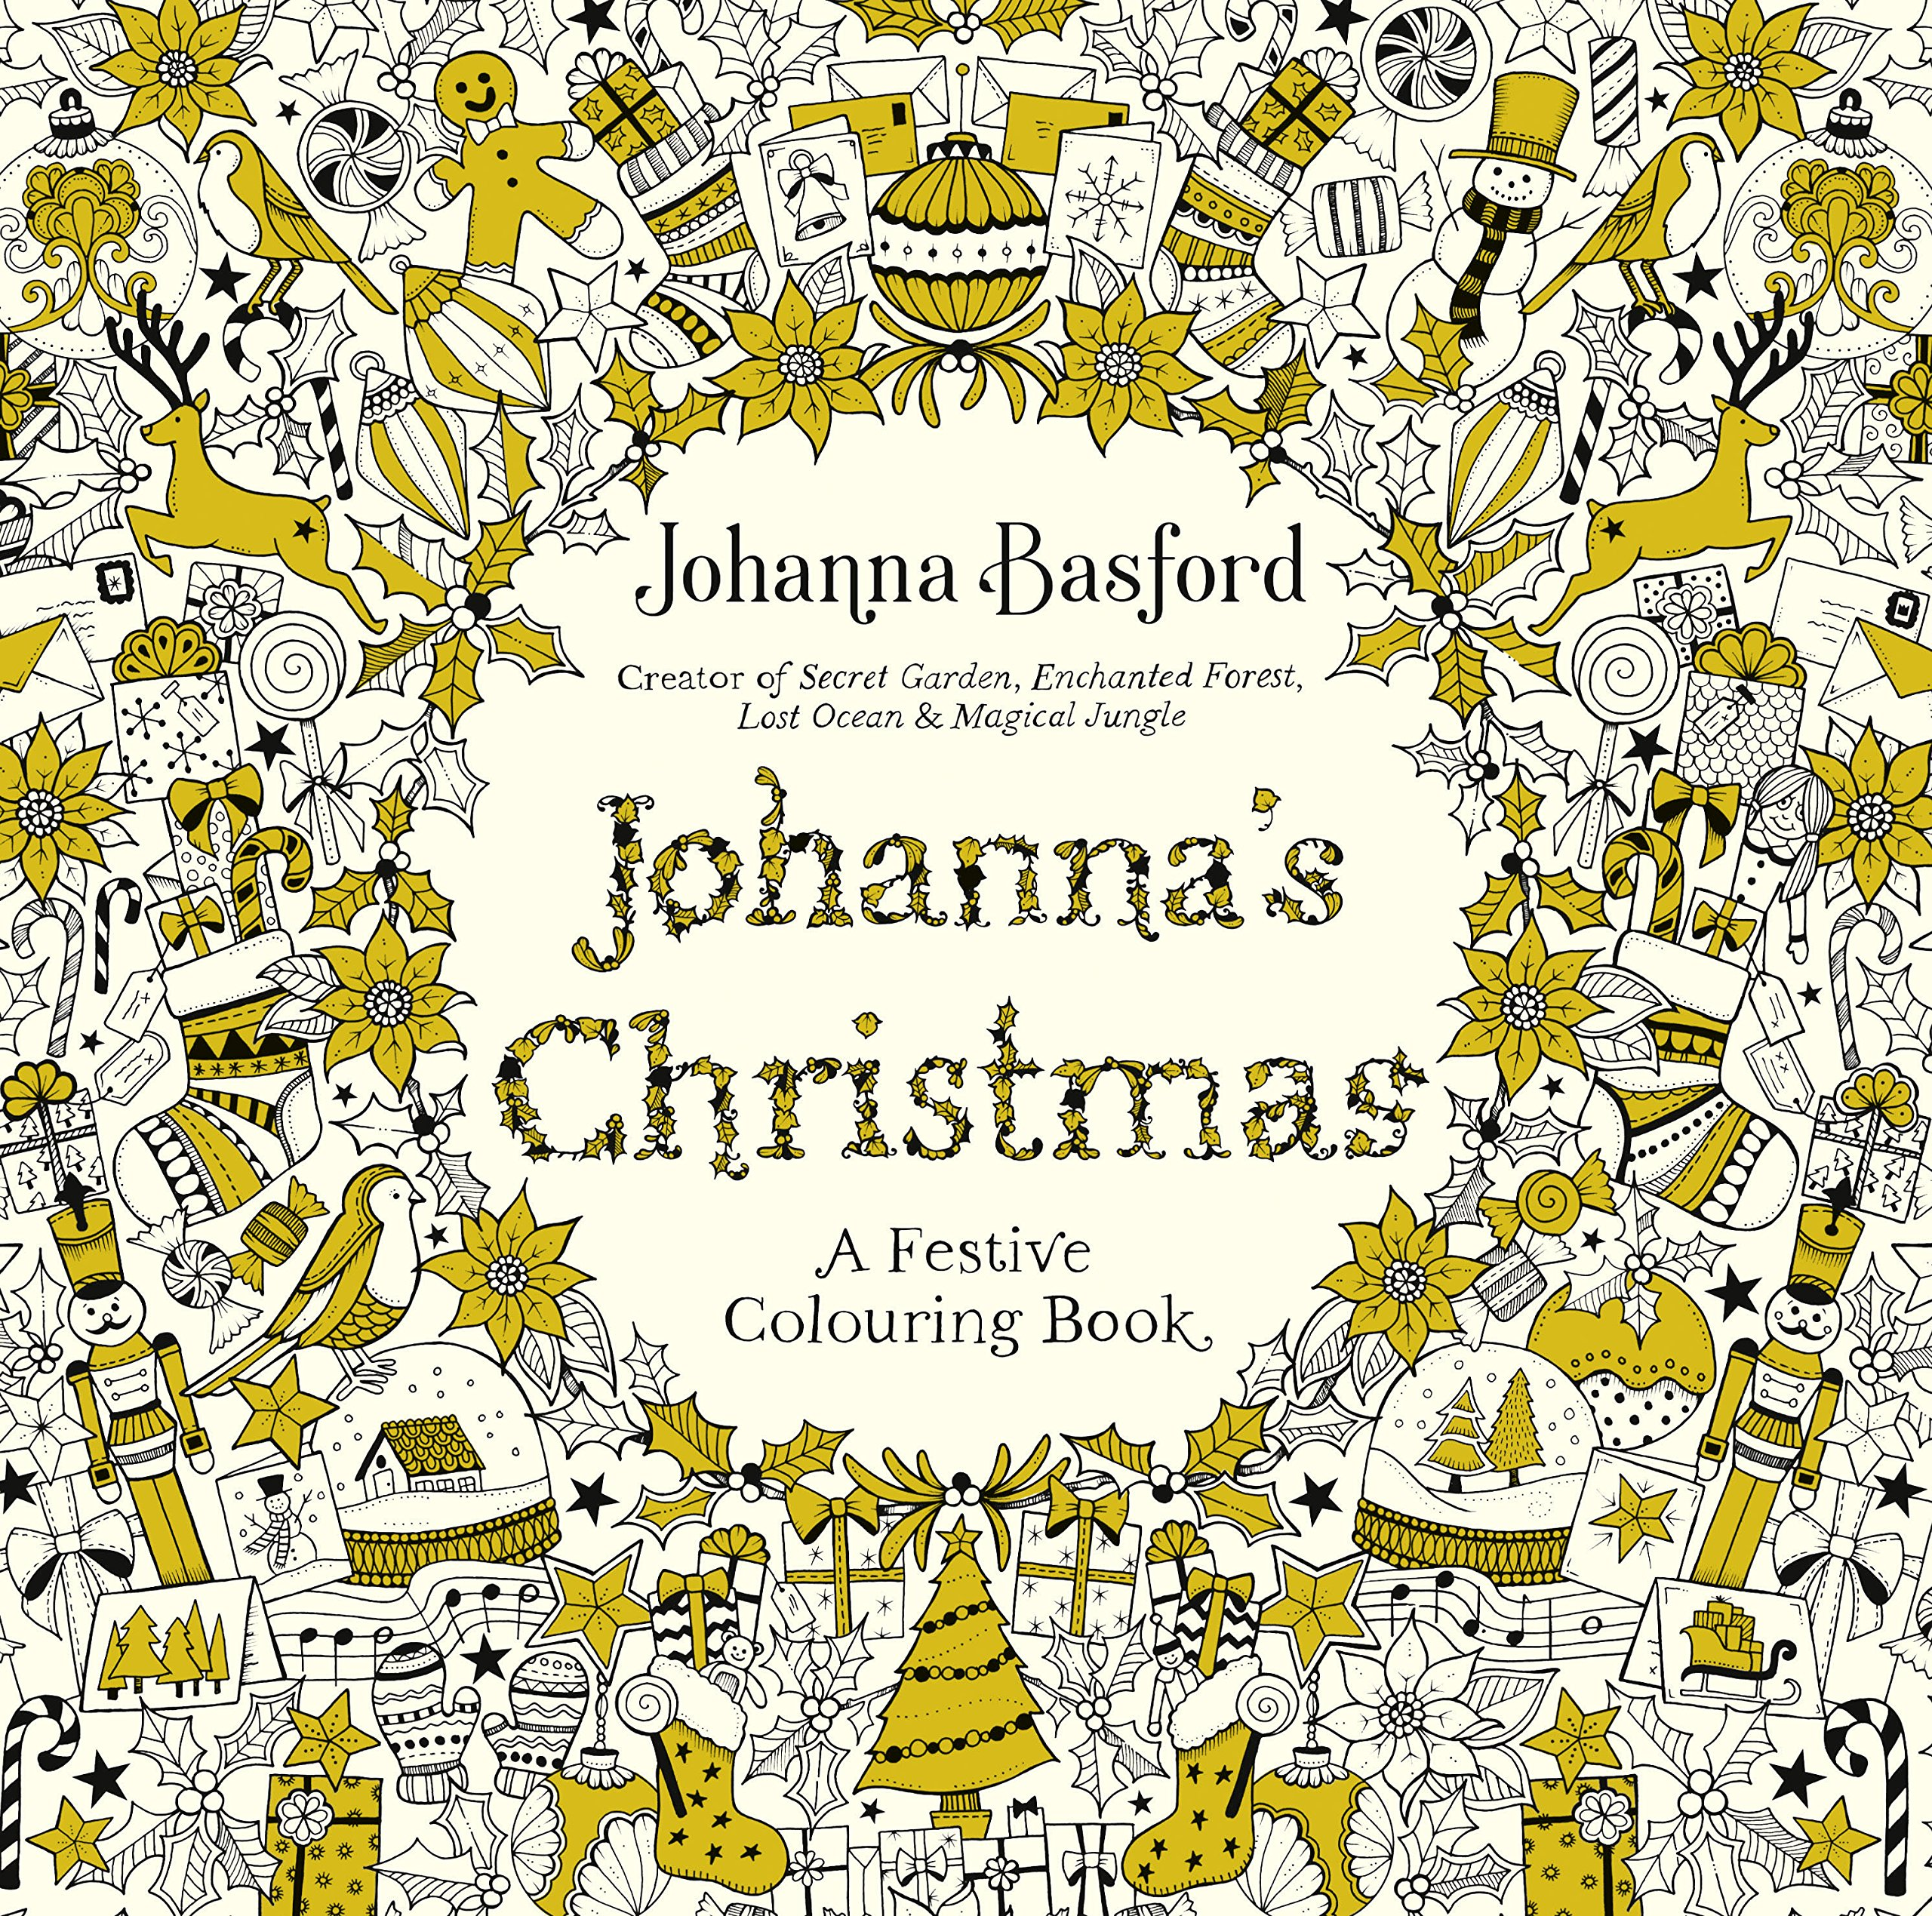 johannas christmas a festive colouring book colouring books amazoncouk johanna basford 9780753557563 books